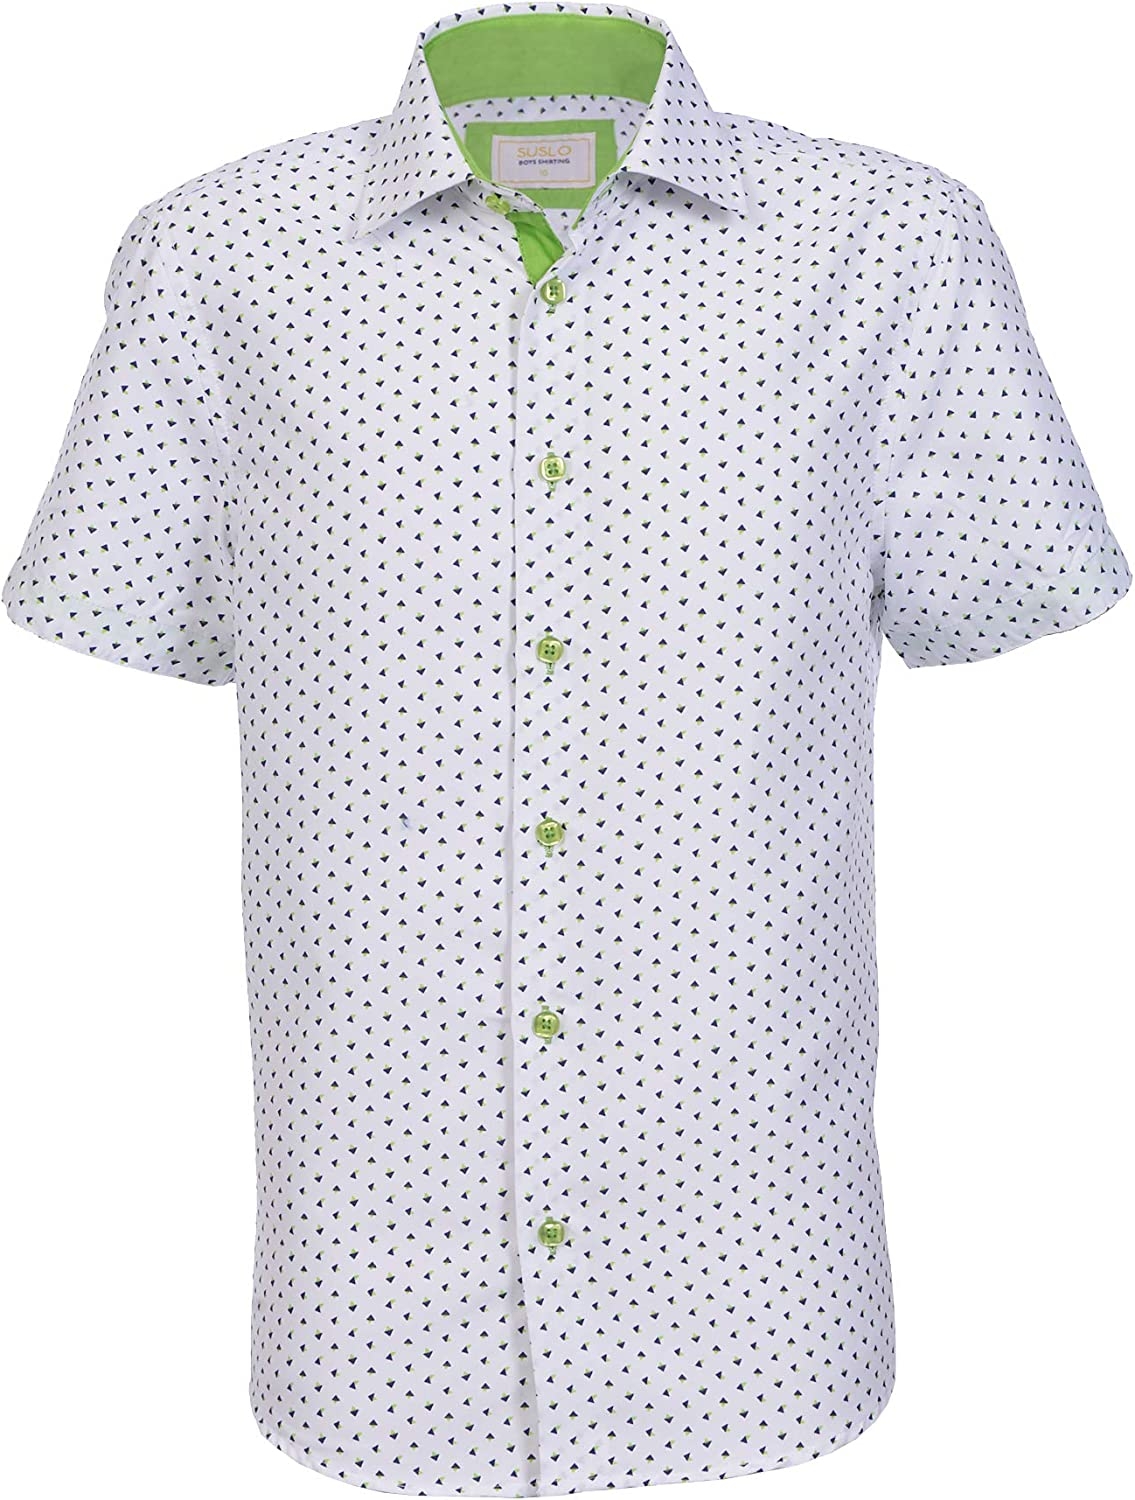 Suslo Couture Boy's Button-Front Short-Sleeved Woven Shirt